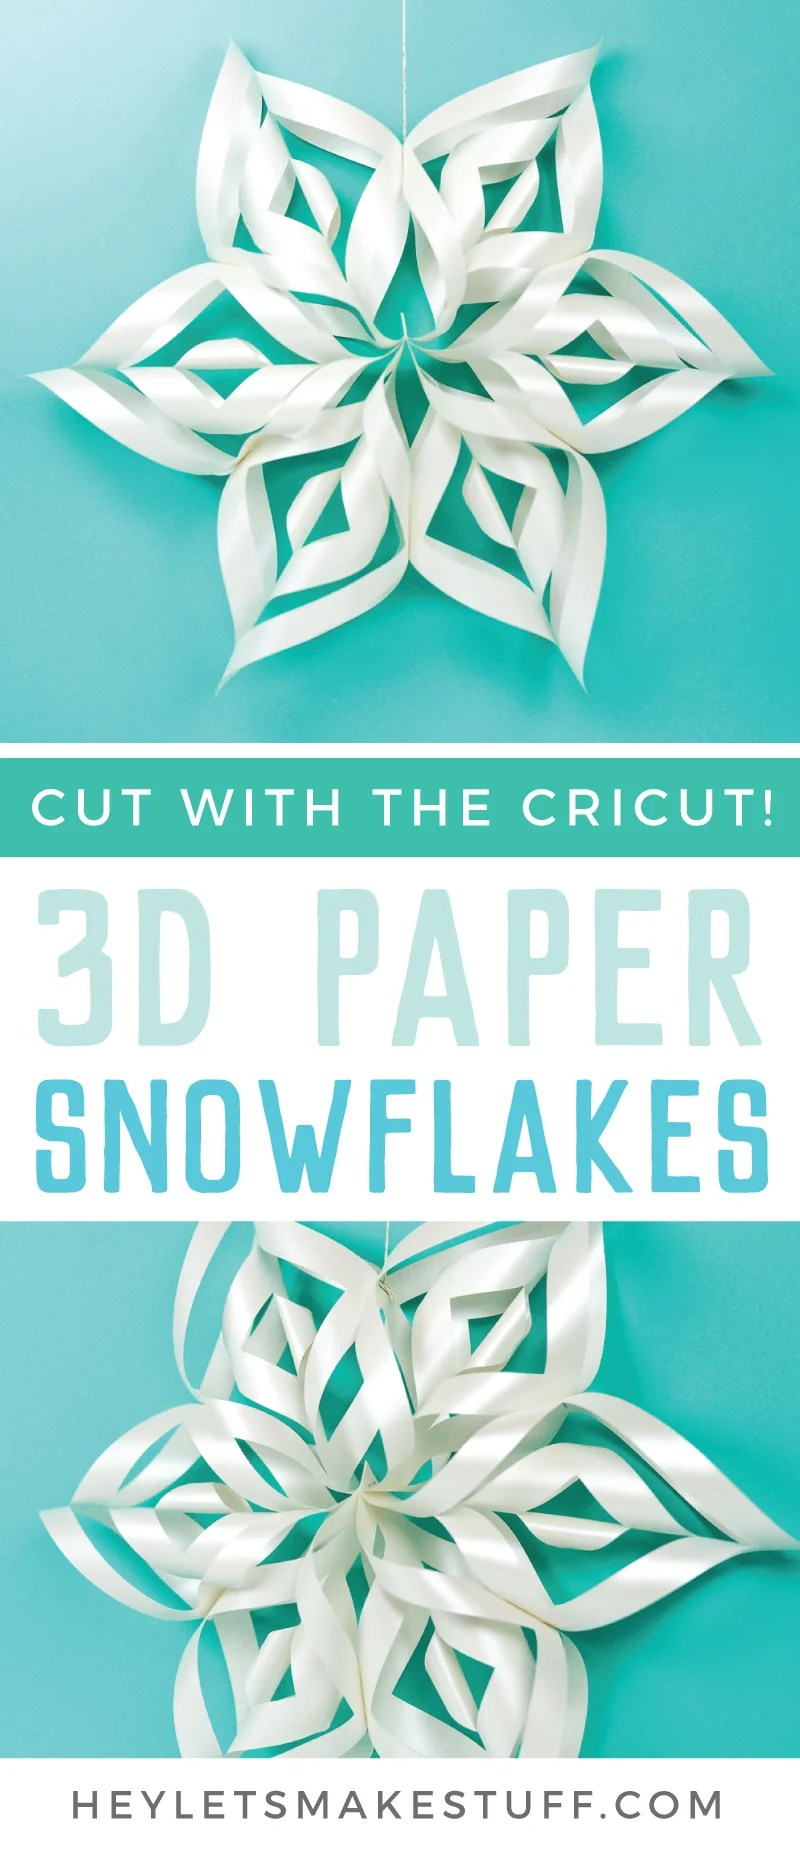 These giant 3D paper snowflakes are fun, whimsical, and will transform your next holiday party into a winter wonderland! Even better, you can cut them using your Cricut and assemble them in minutes. via @heyletsmakestuf